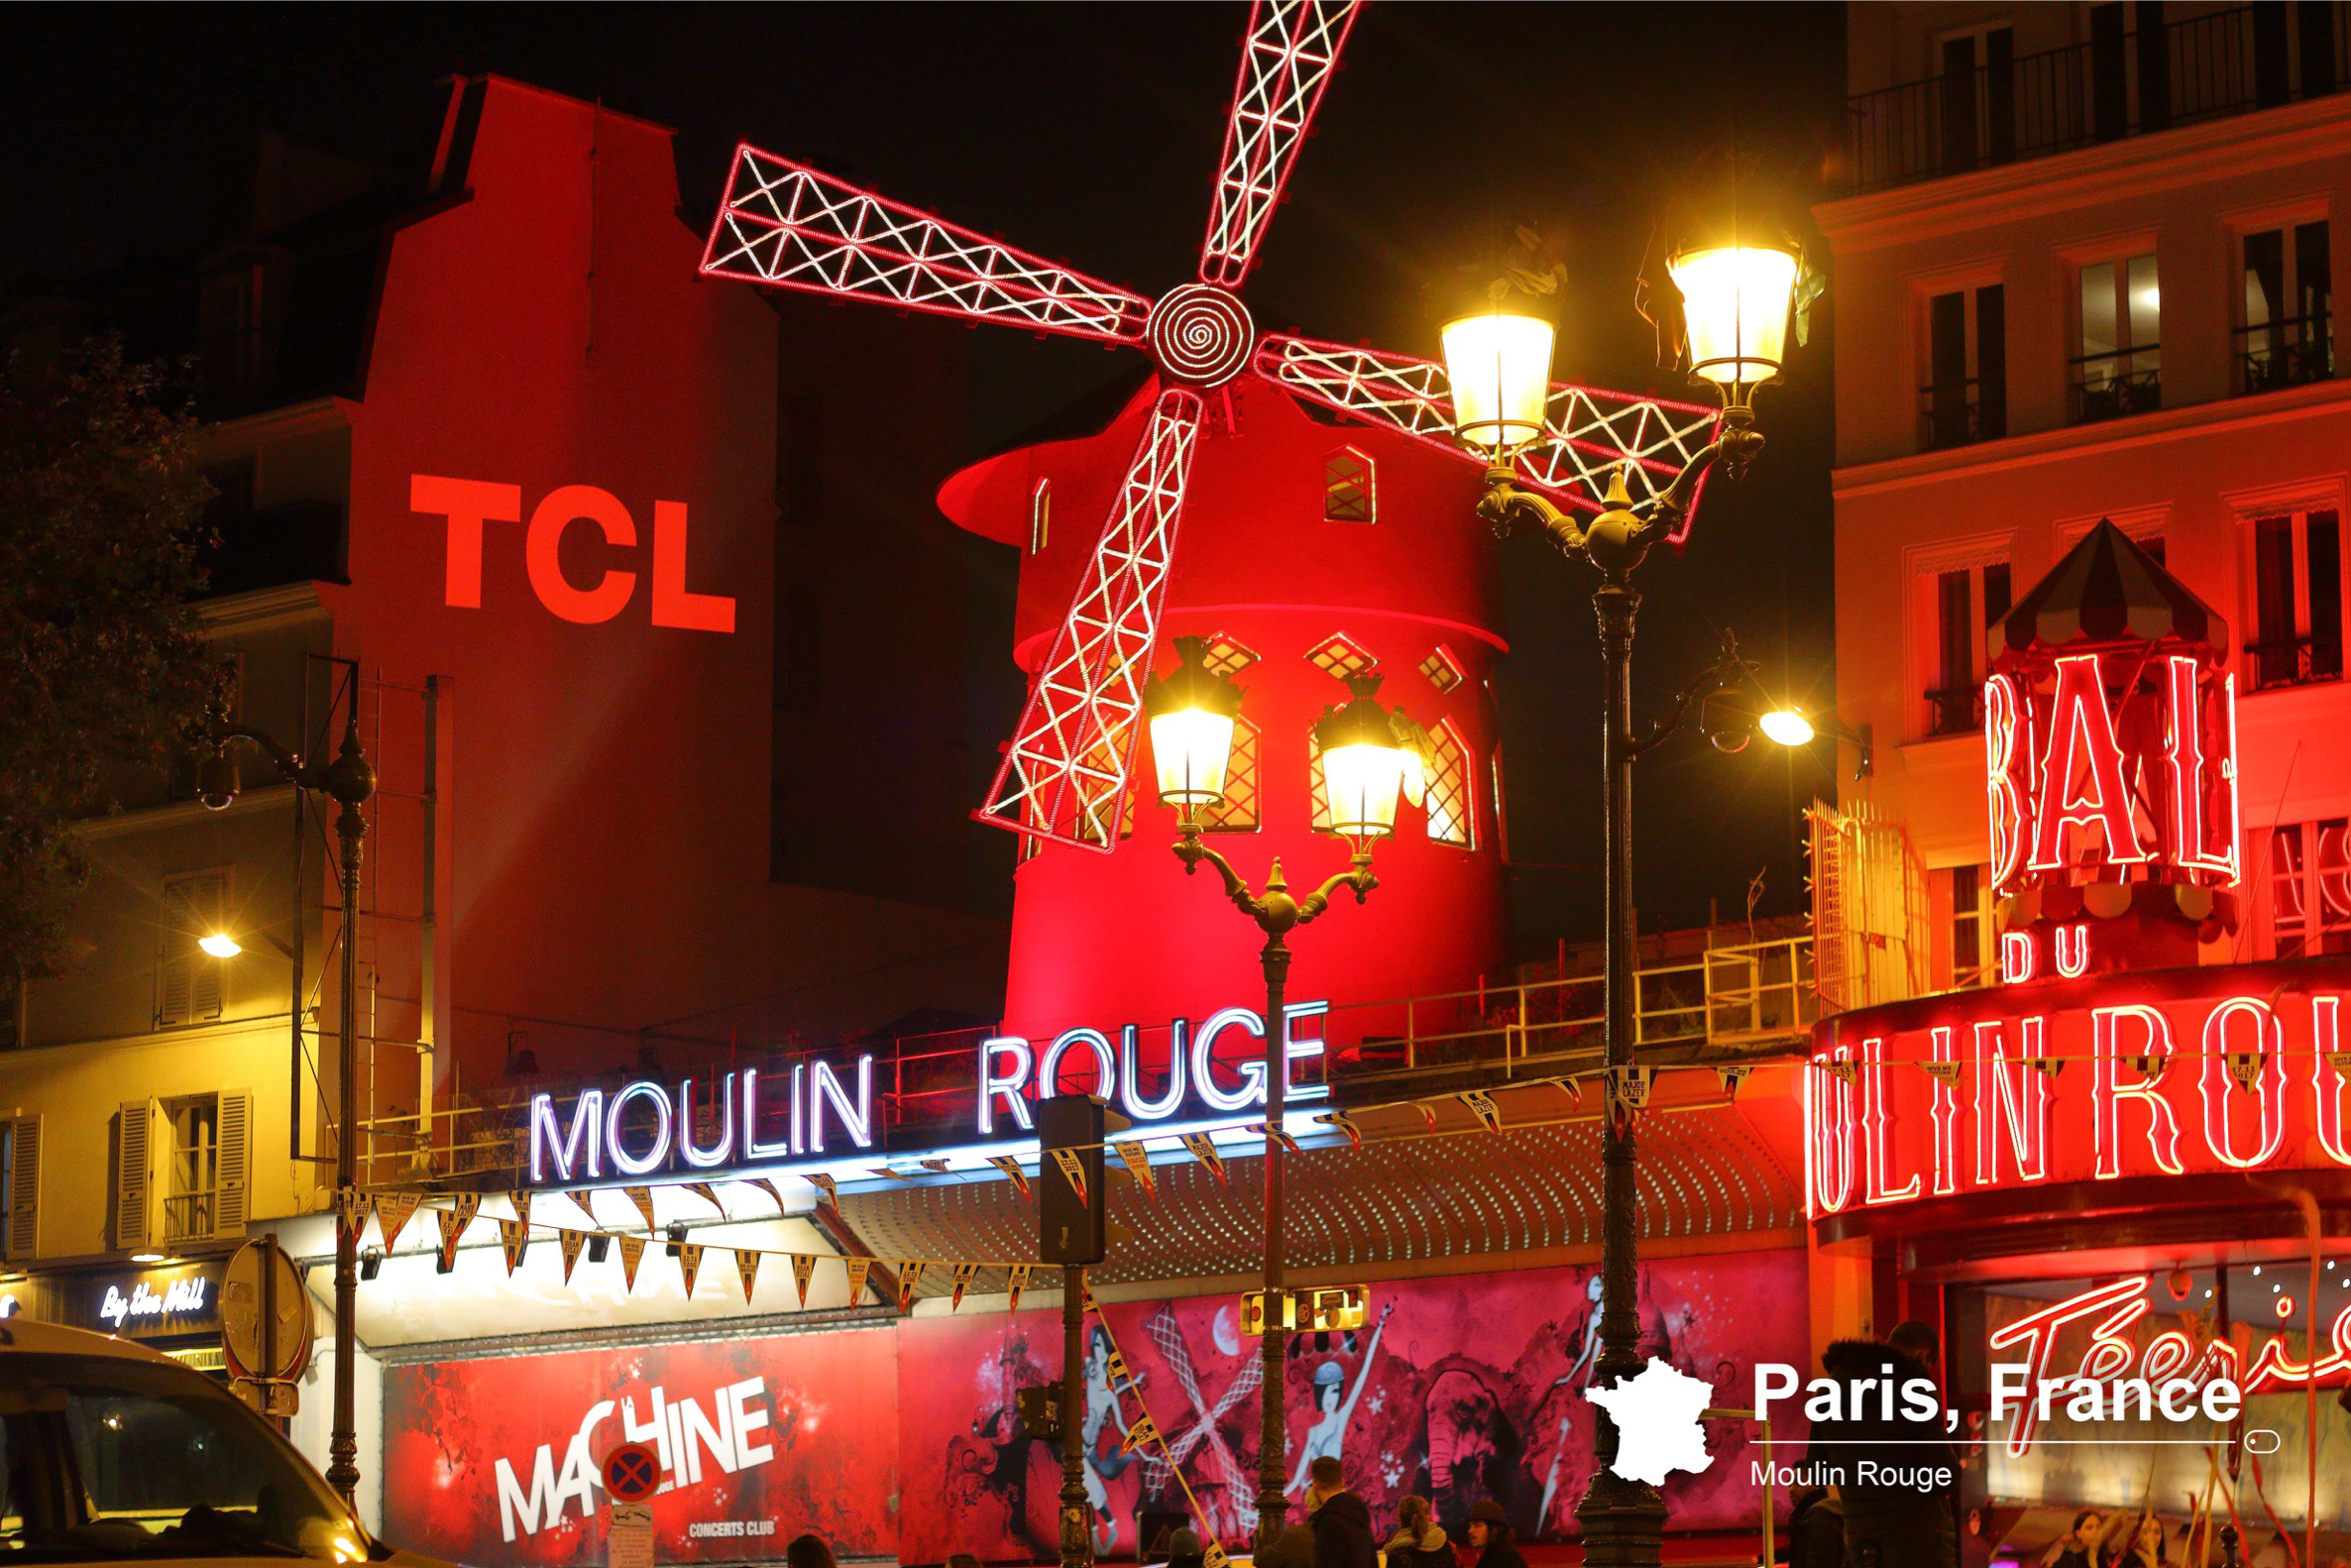 TCL Moulin Rouge Paris